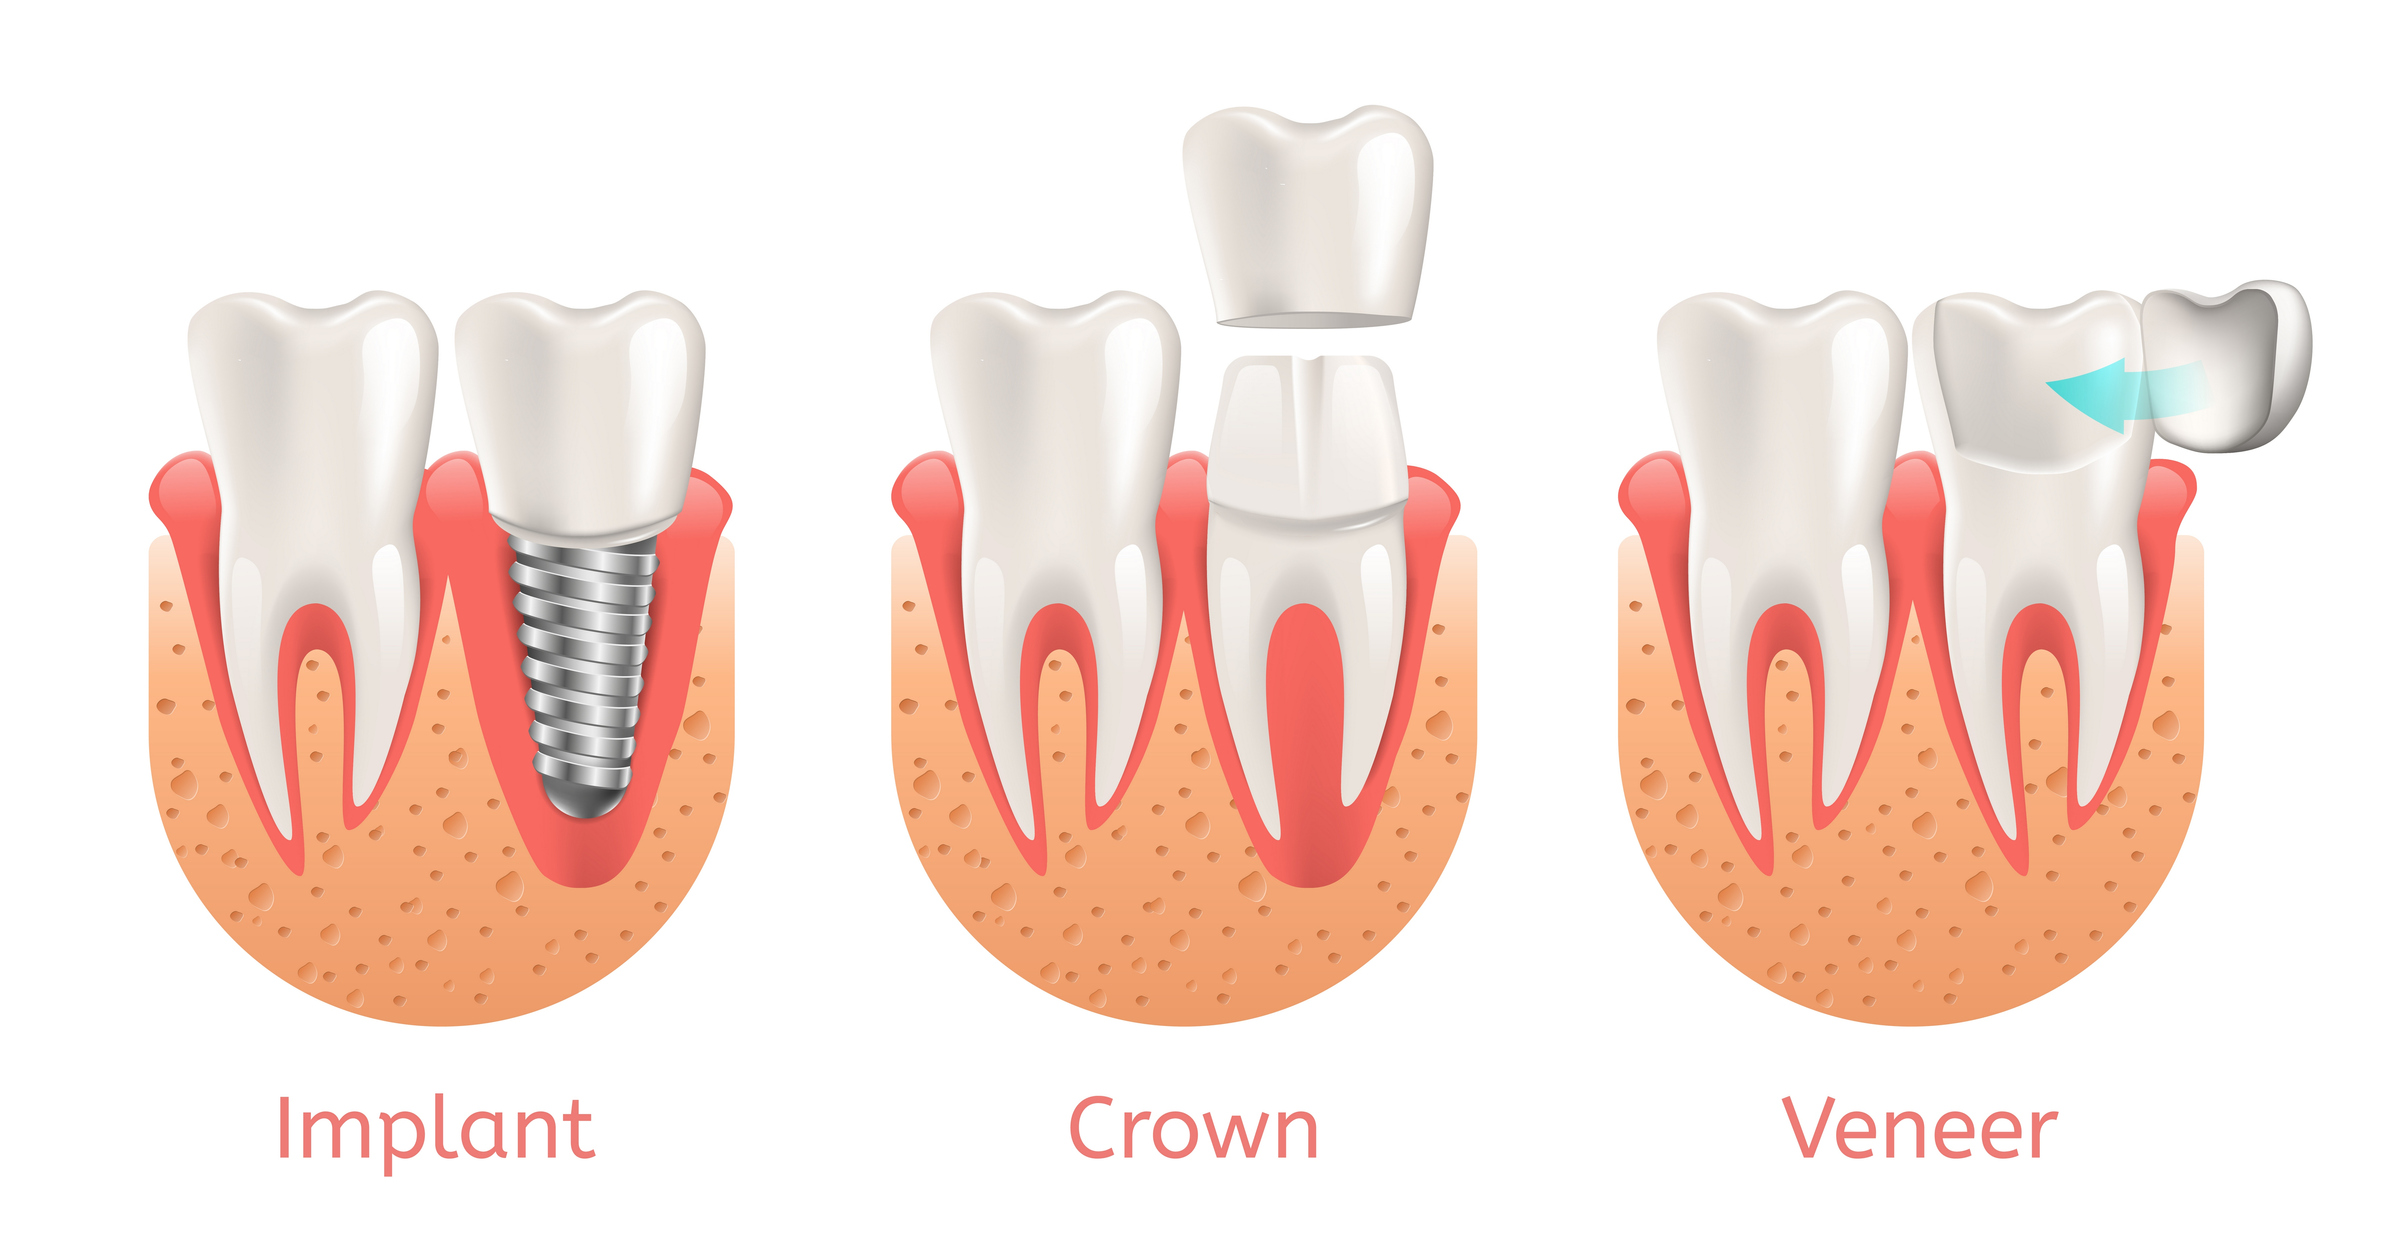 Three examples of what a dental implant, dental crown, and a veneer look like.